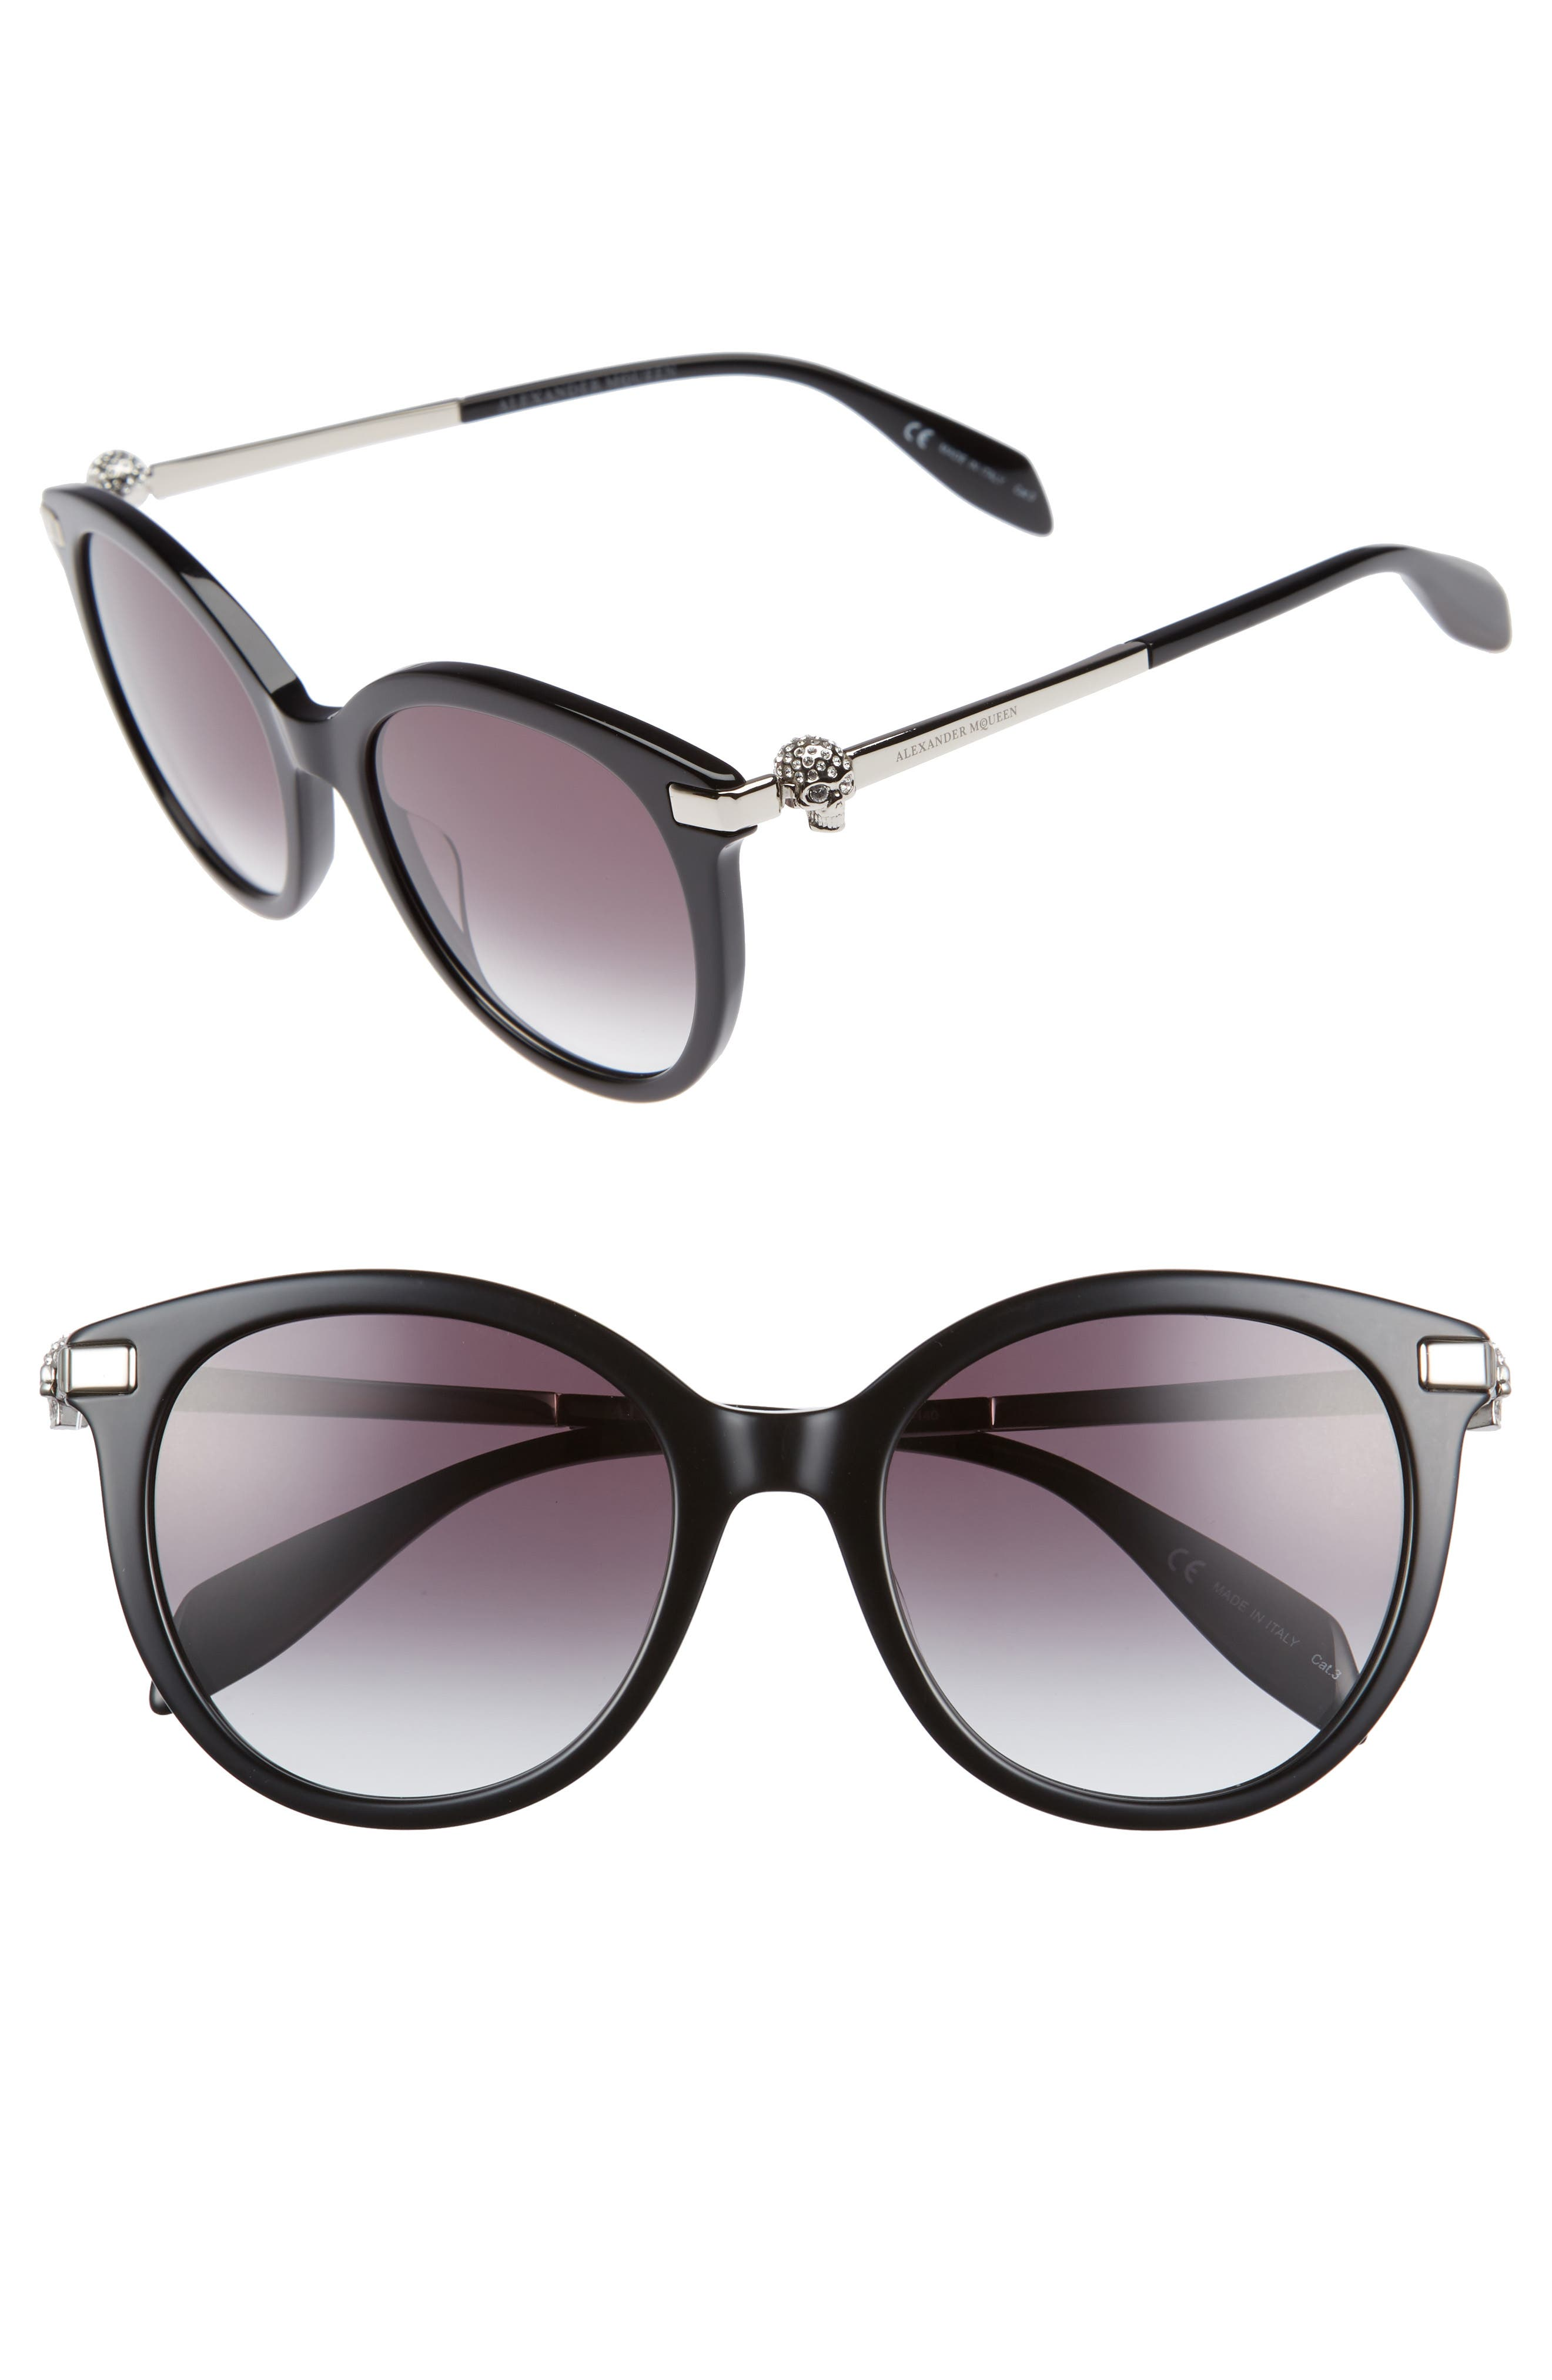 53mm Rounded Cat Eye Sunglasses,                         Main,                         color, Black